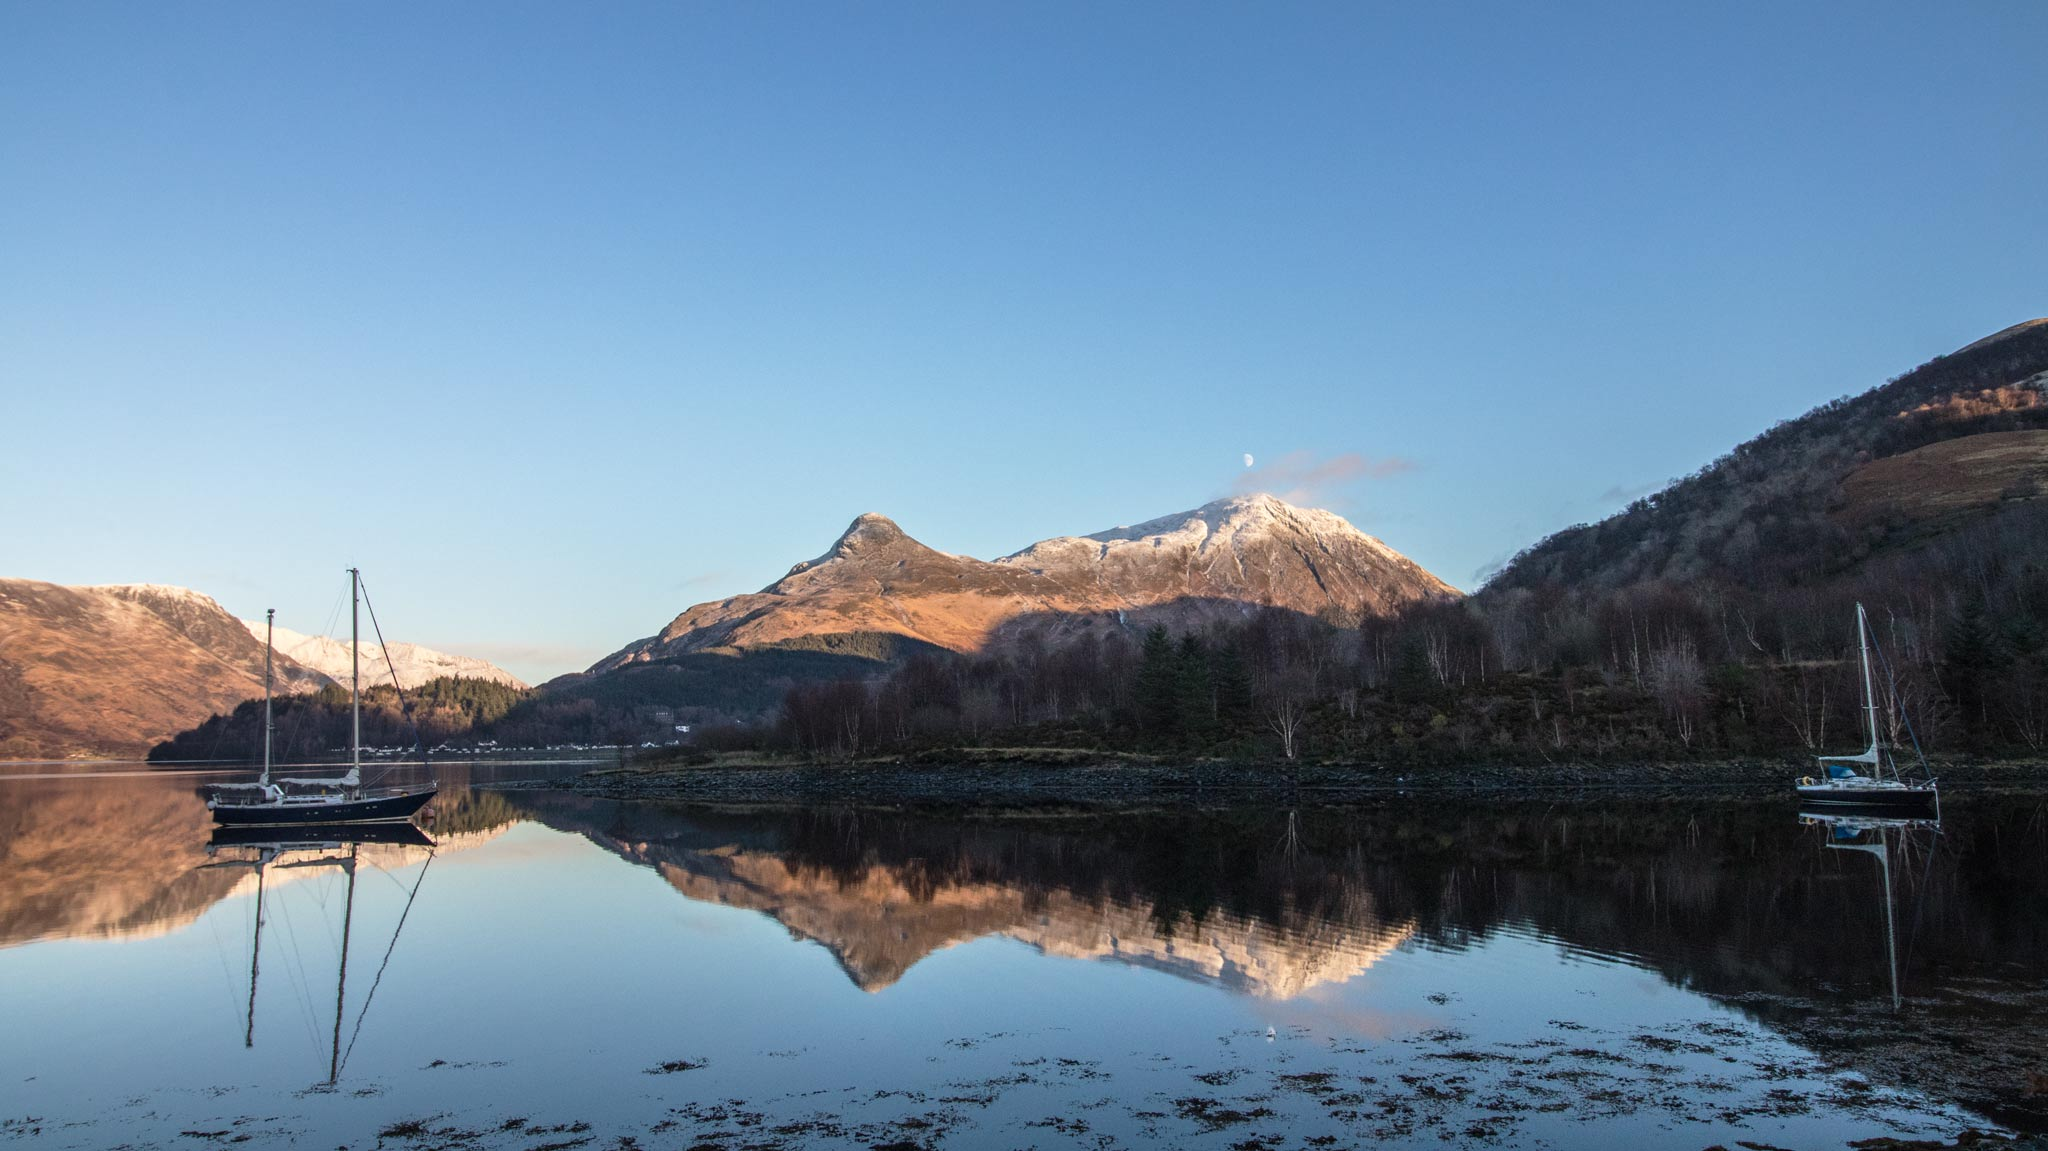 Reflections on Loch Leven